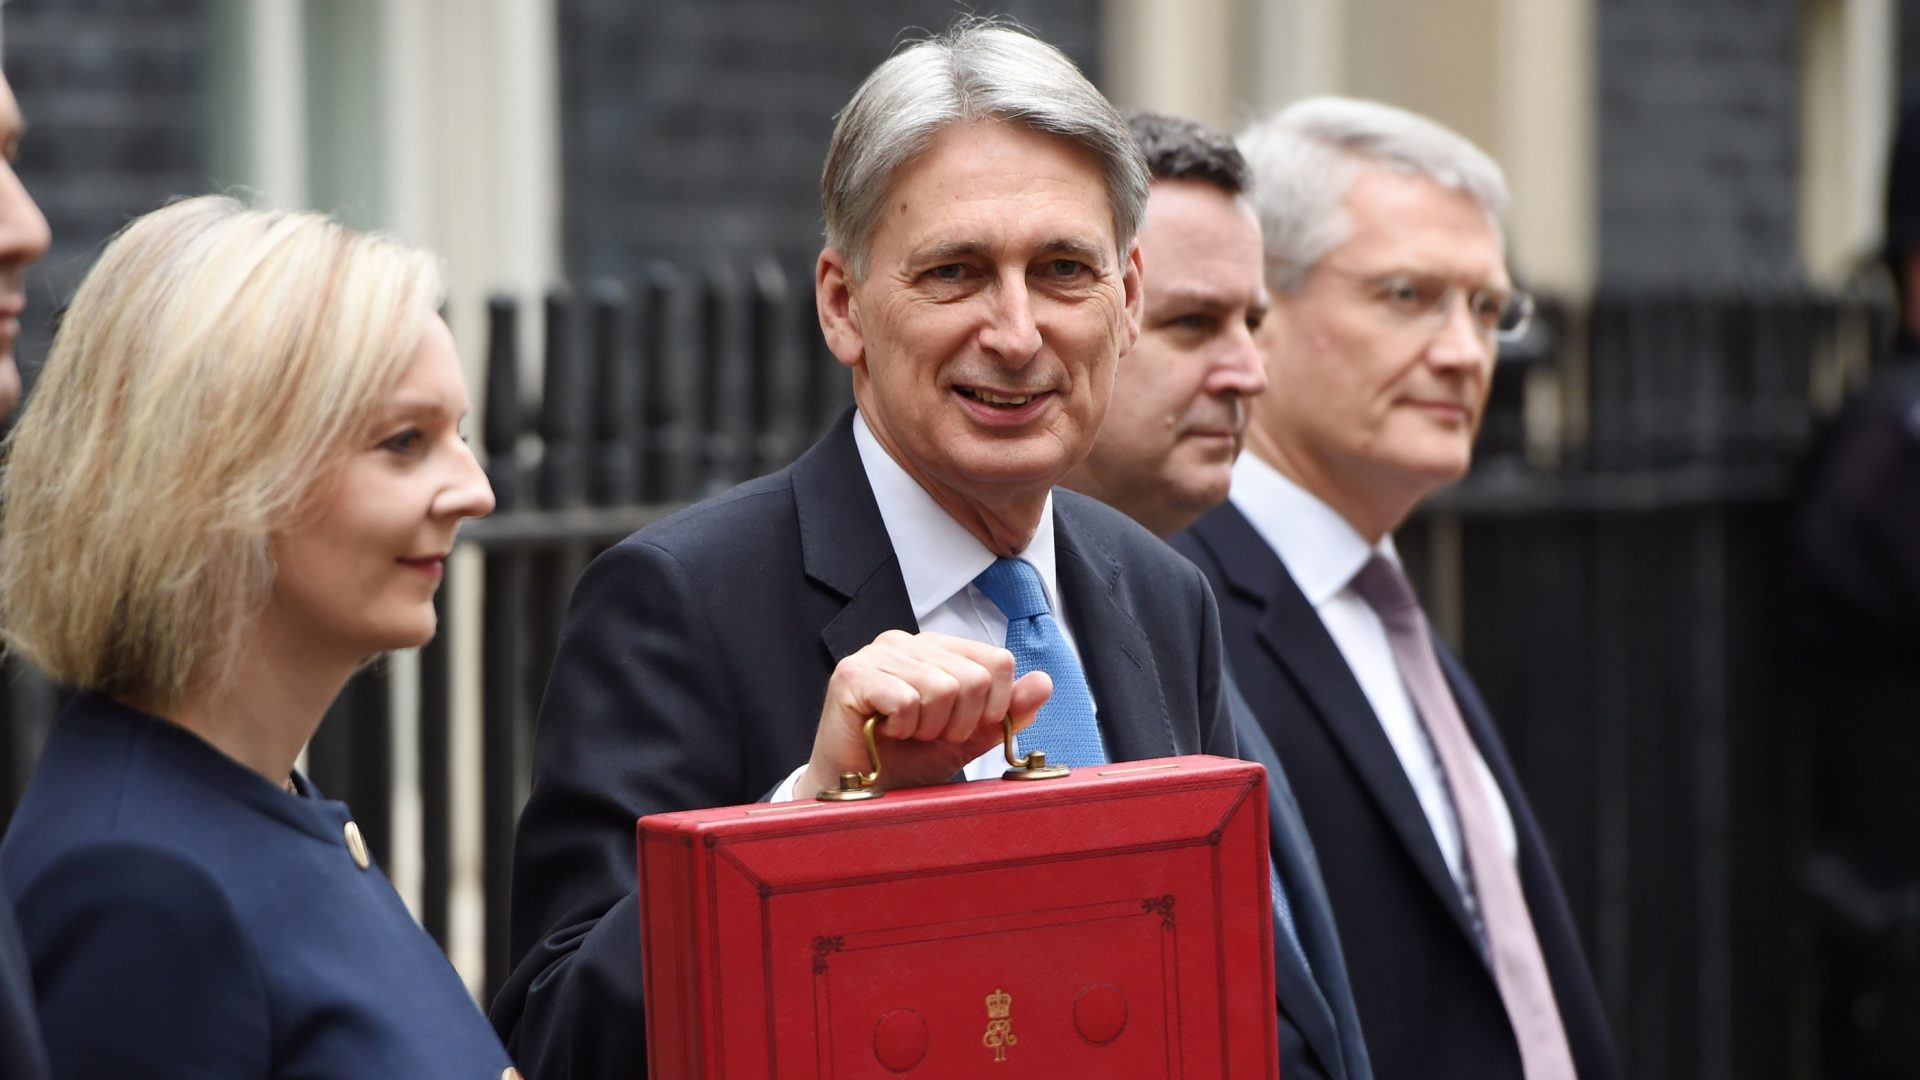 Philip Hammond and the Treasury team in Downing Street